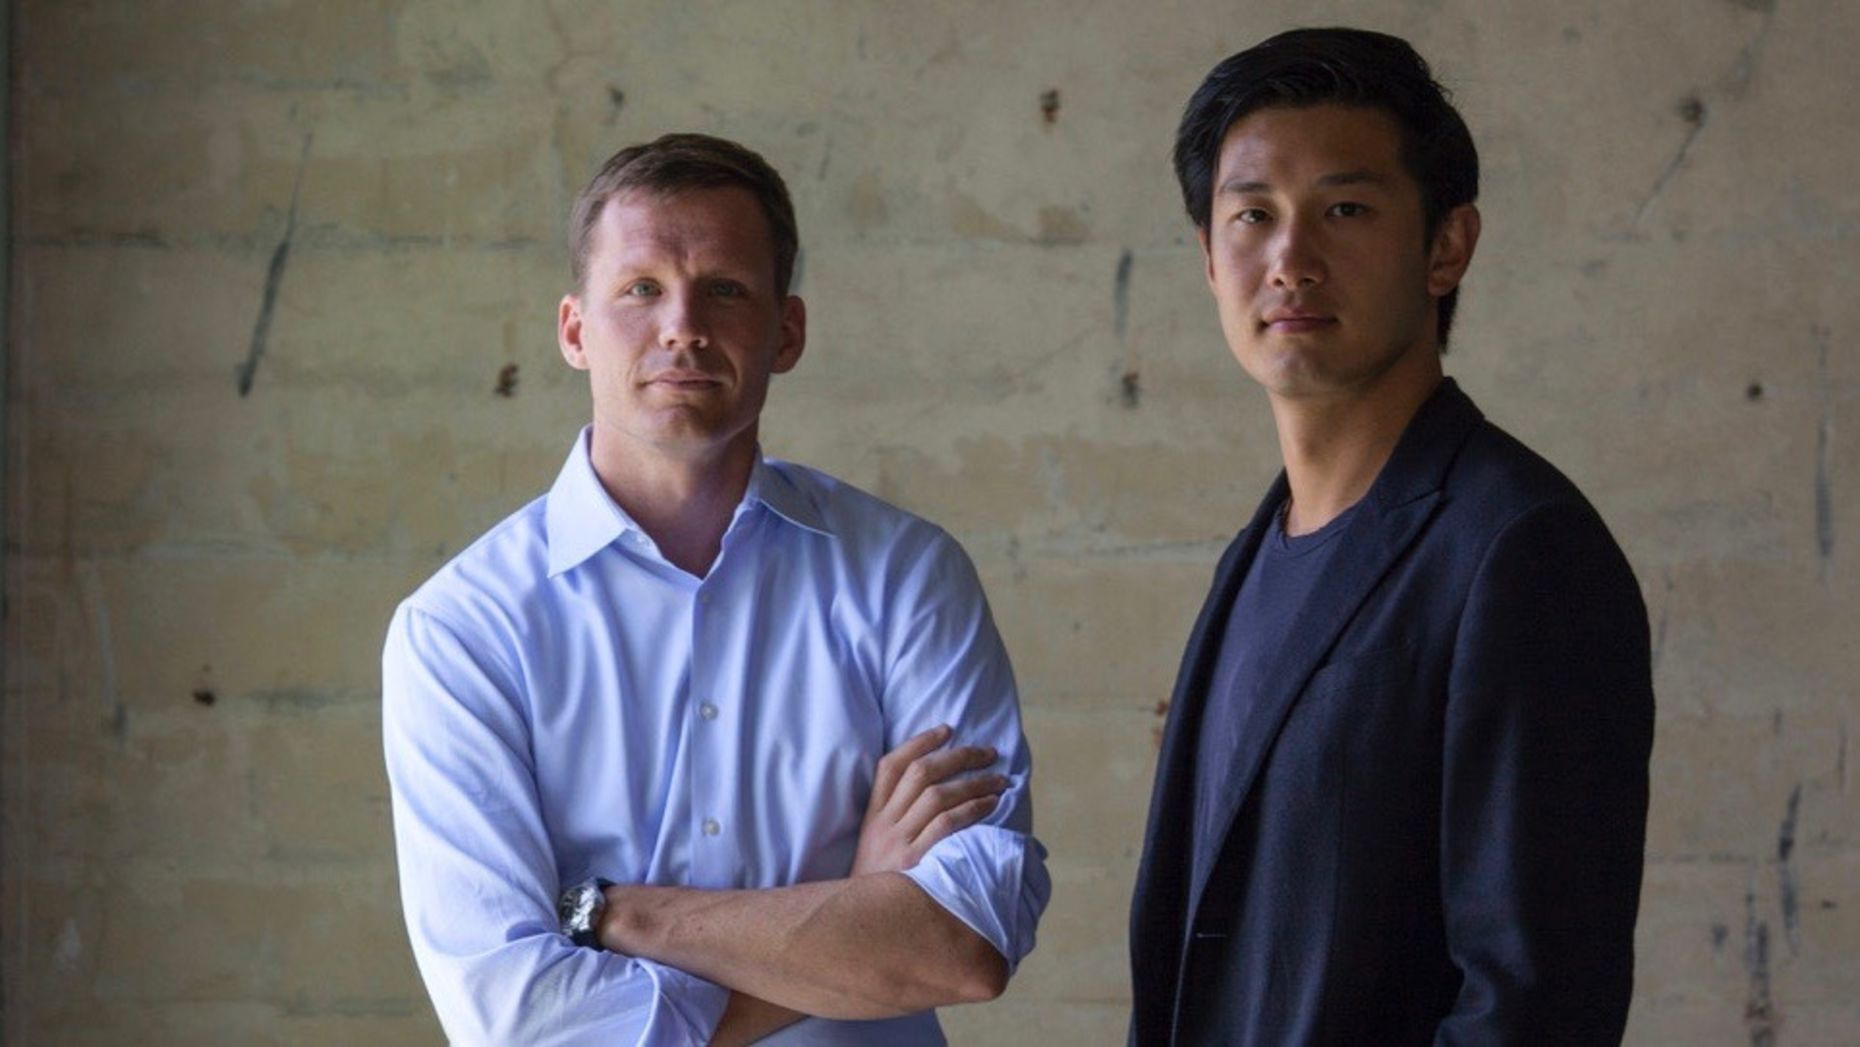 Binary's former partner Justin Caldbeck with the remaining partner, Jonathan Teo. Photo by Peter DaSilva.